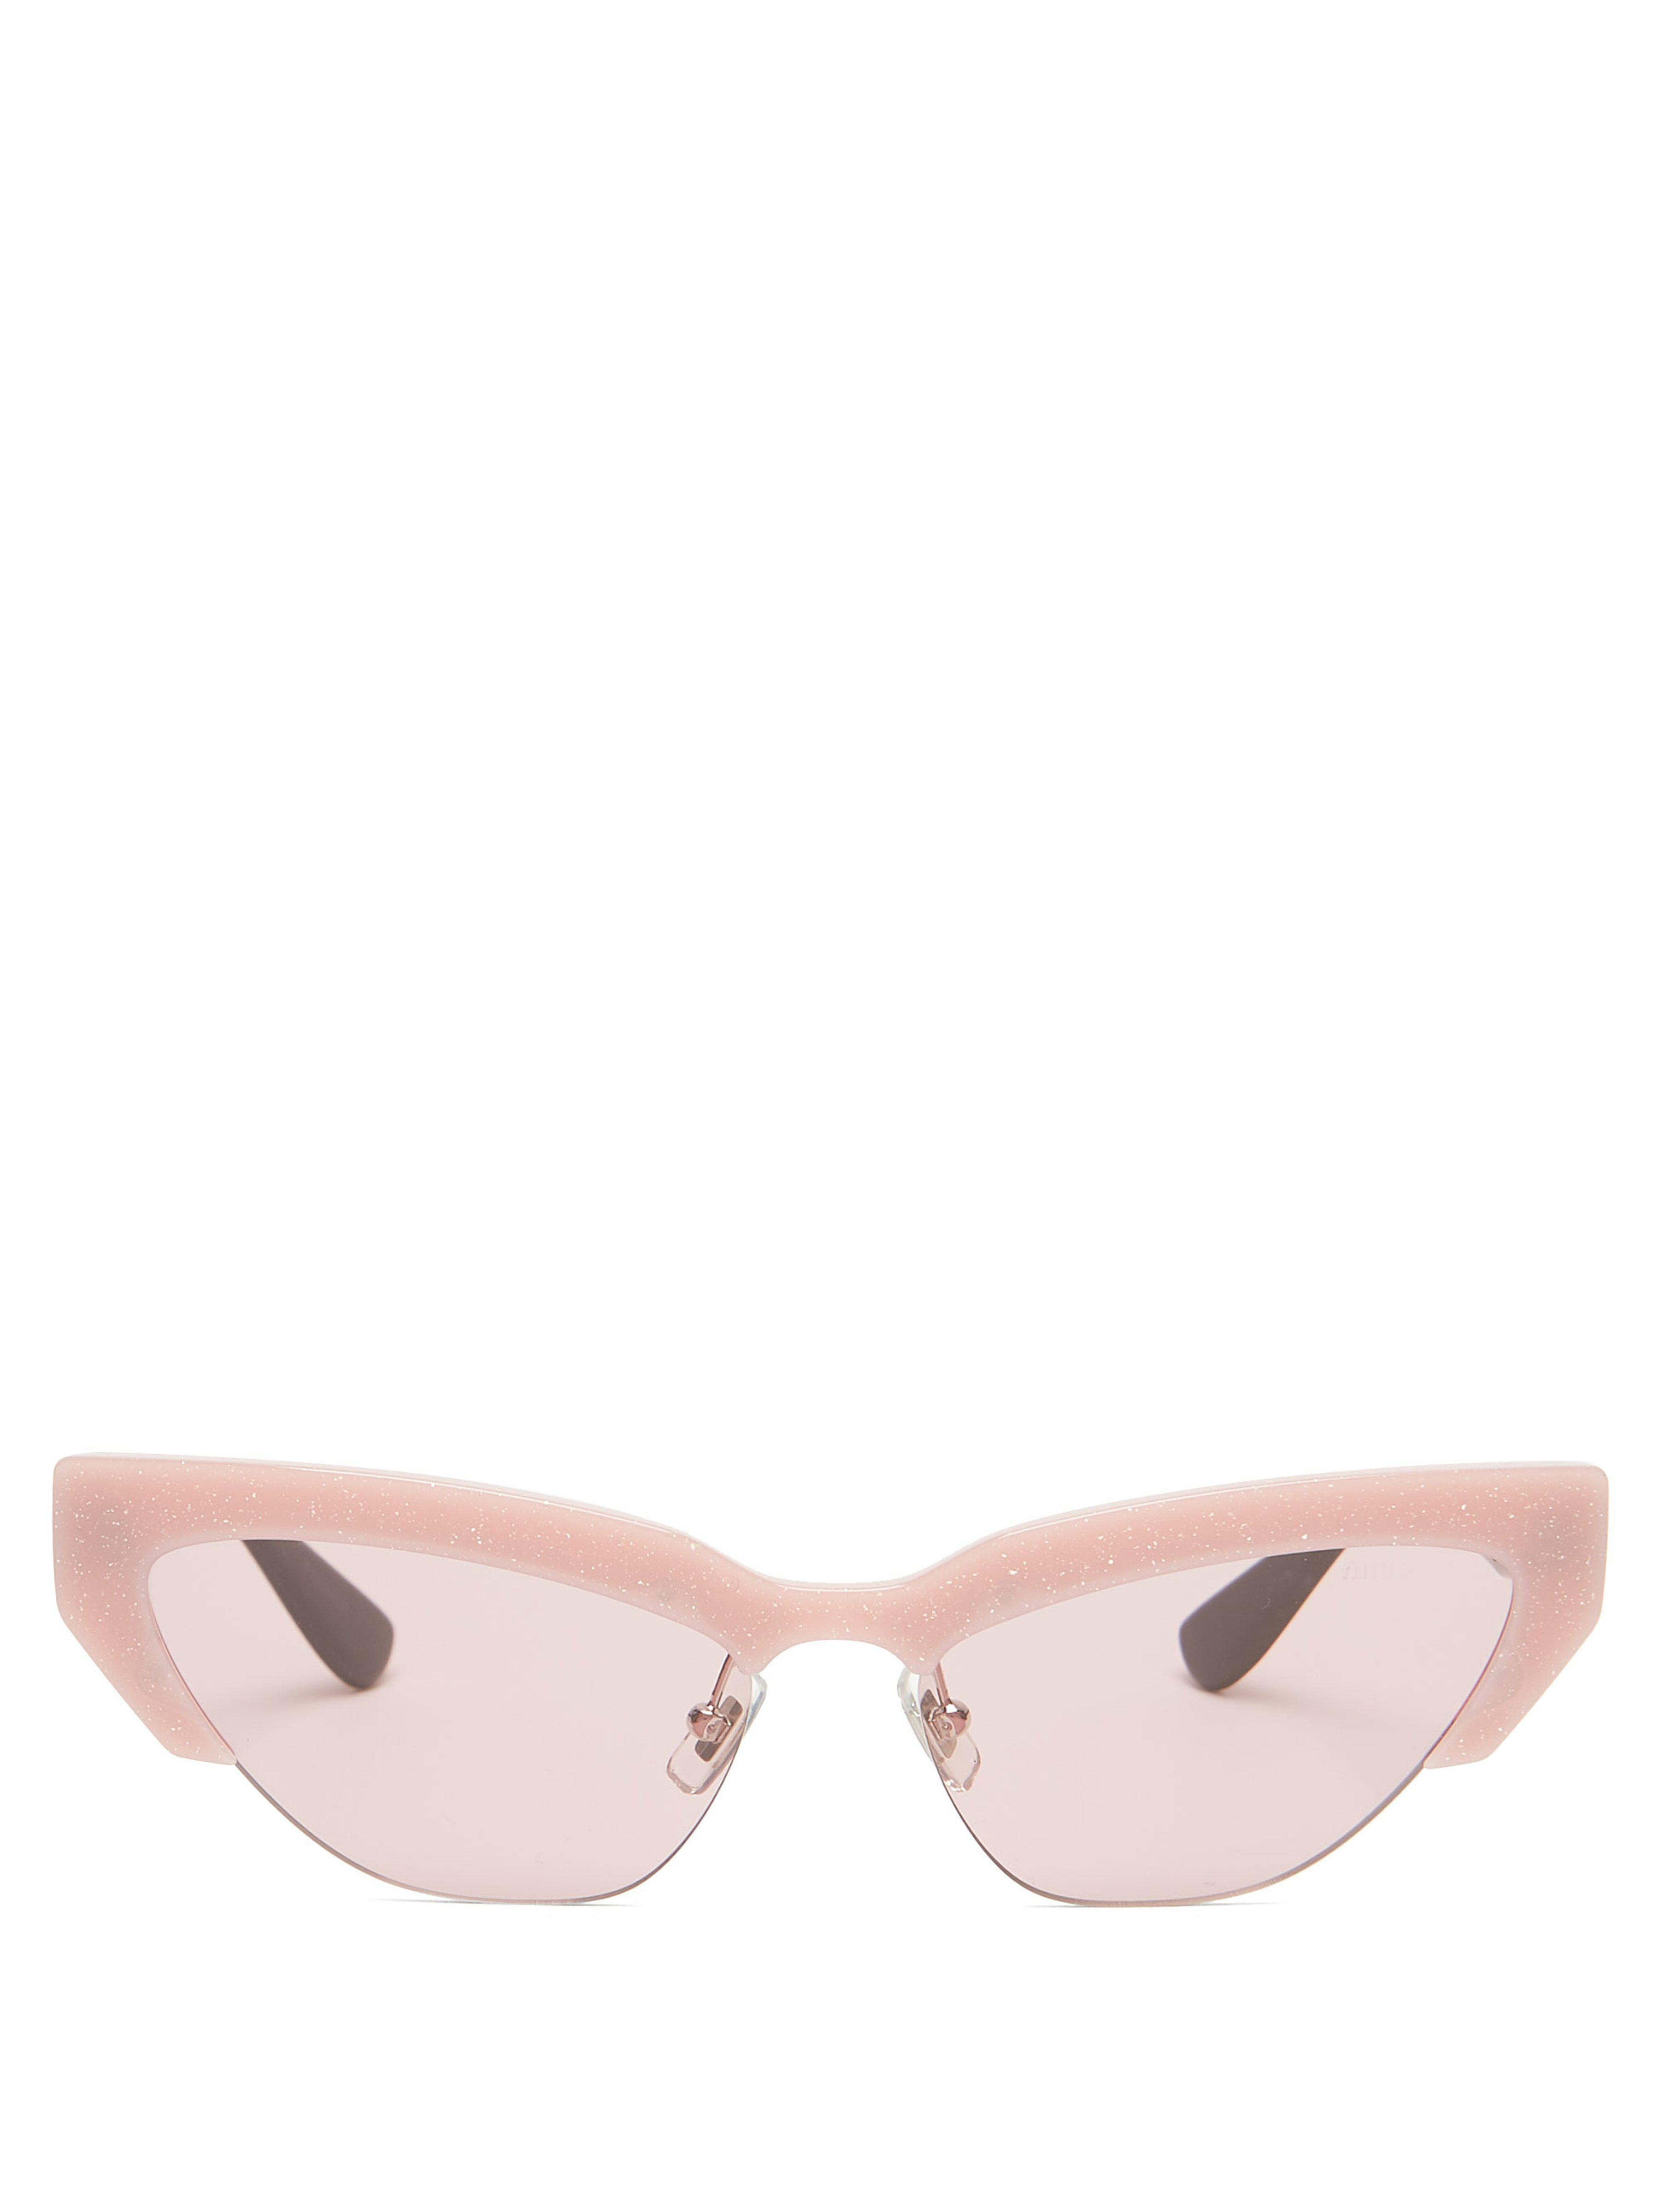 c3fc683d08 Miu Miu Glitter Acetate Trim Cat Eye Sunglasses in Pink - Save ...